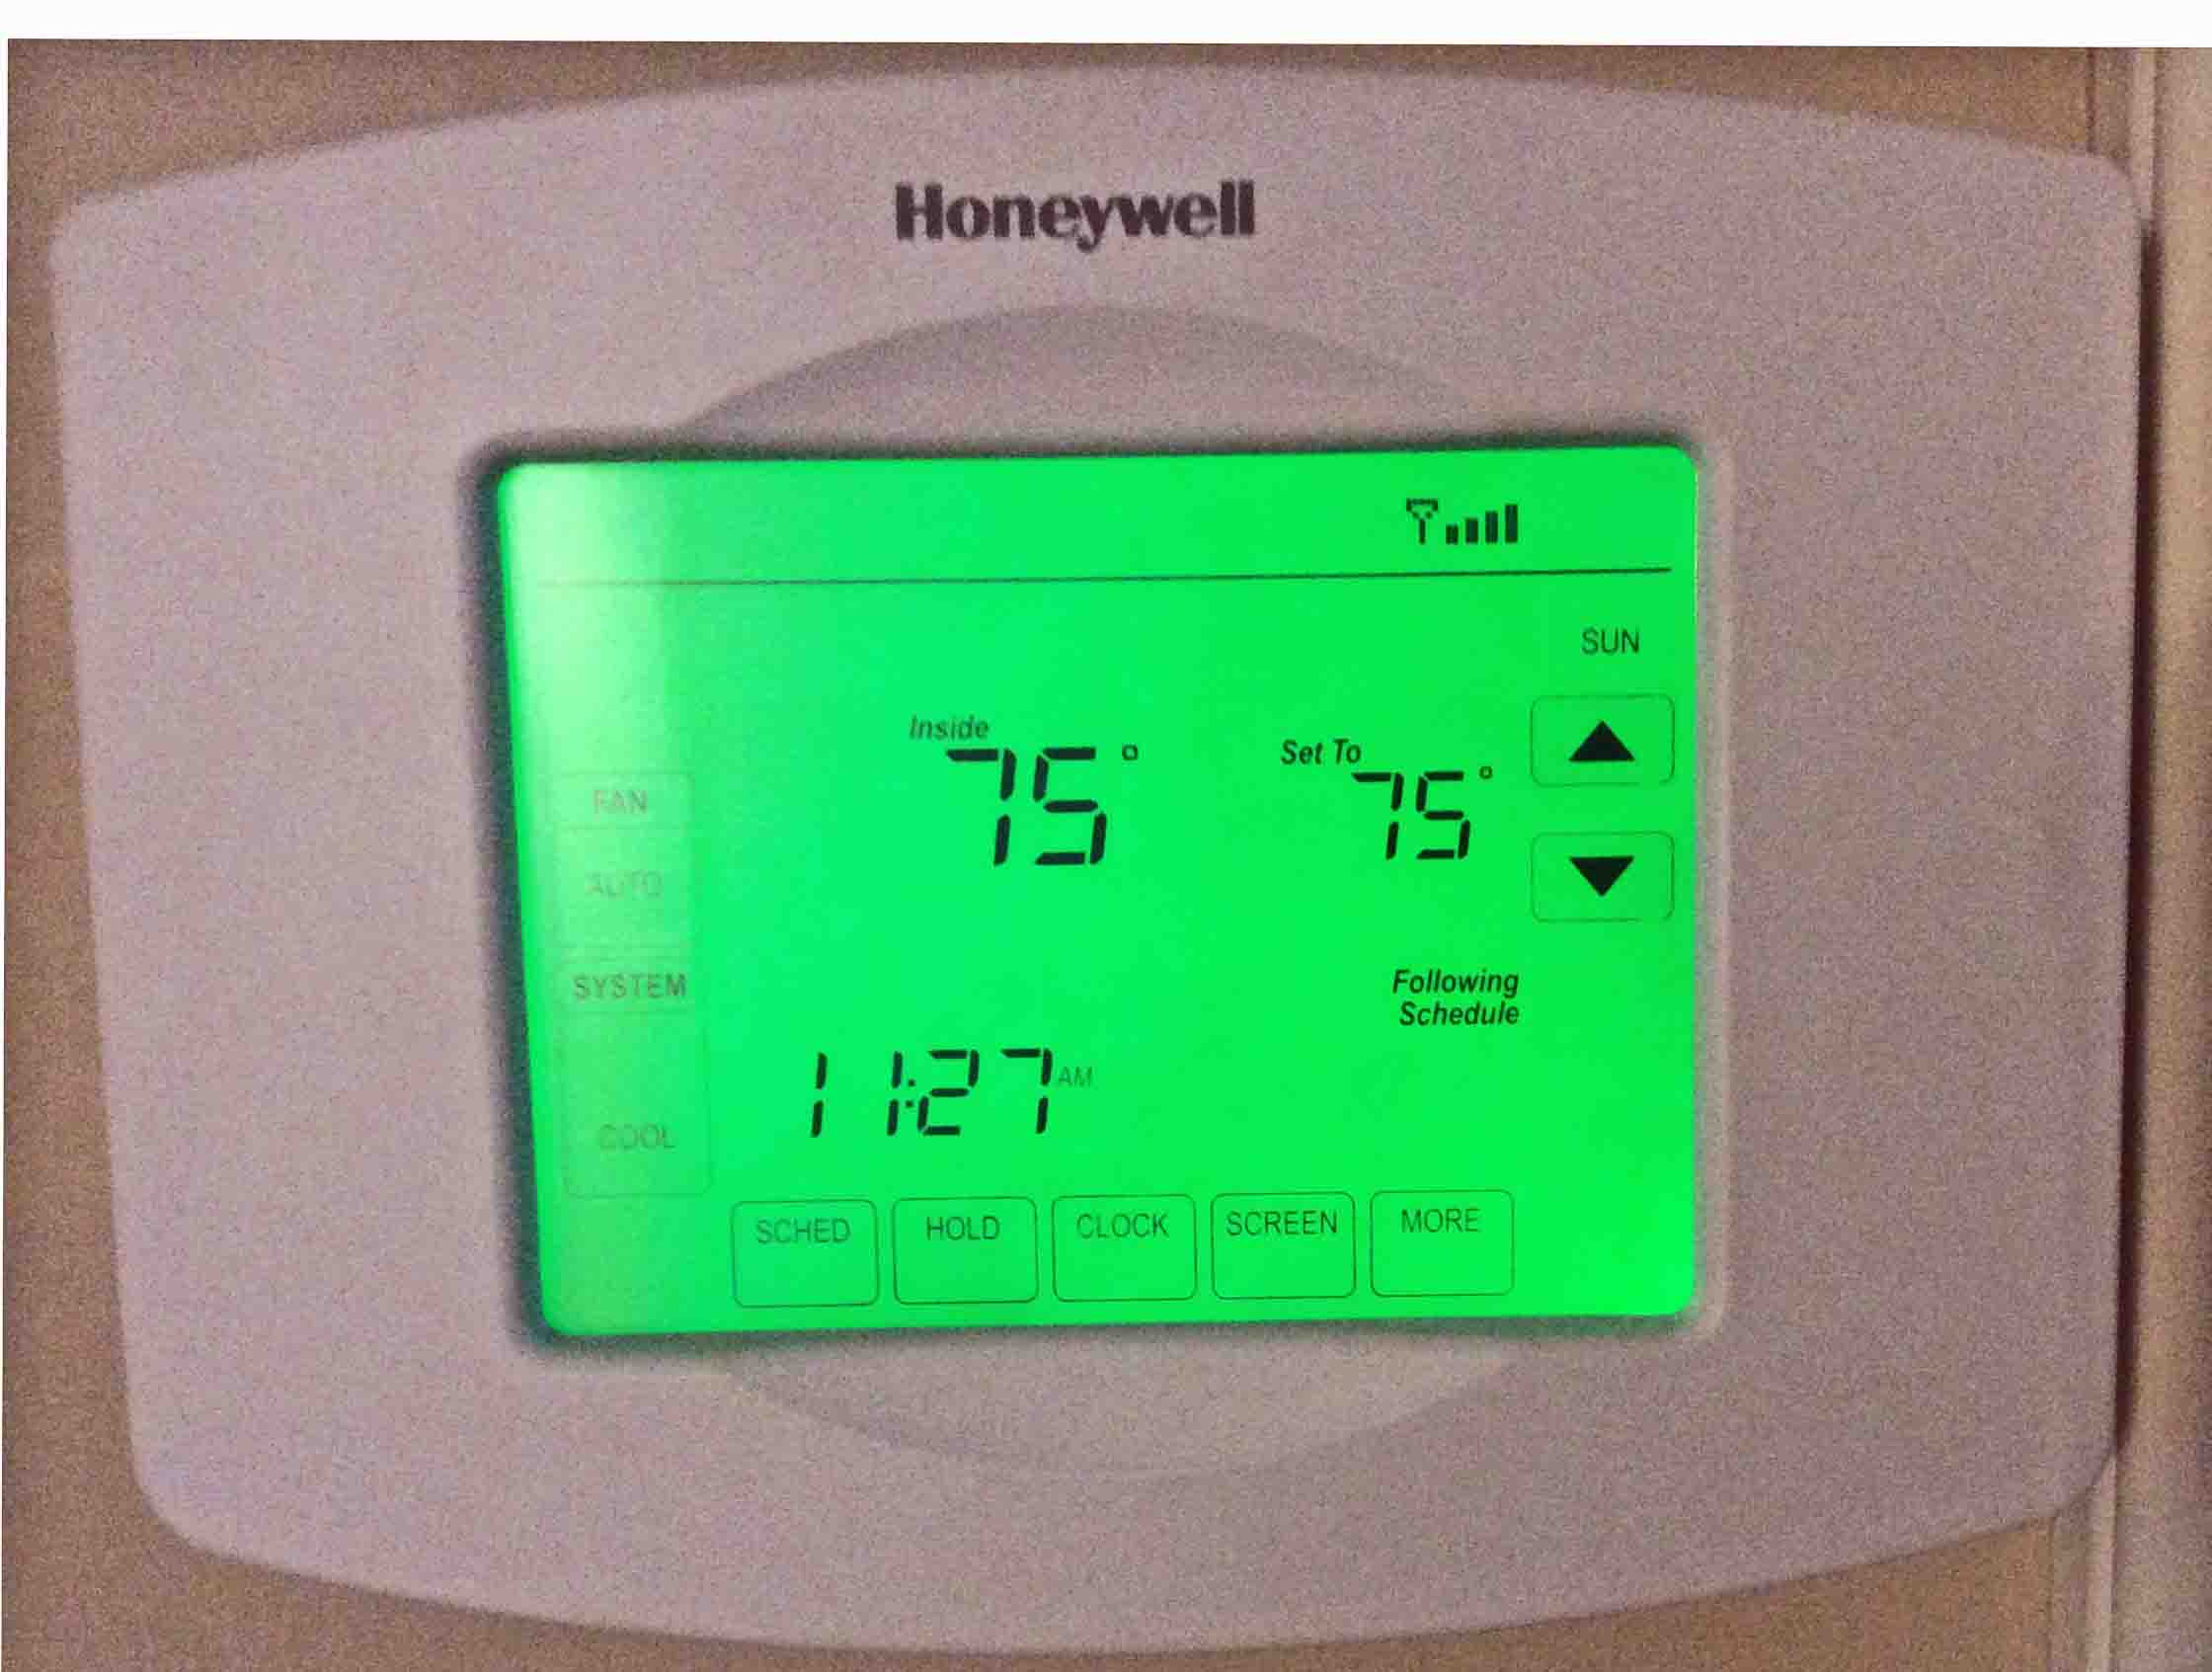 Honeywell 7 Day Wifi Thermostat Manual Wiring For Thermostats Older Car Diagrams Explained